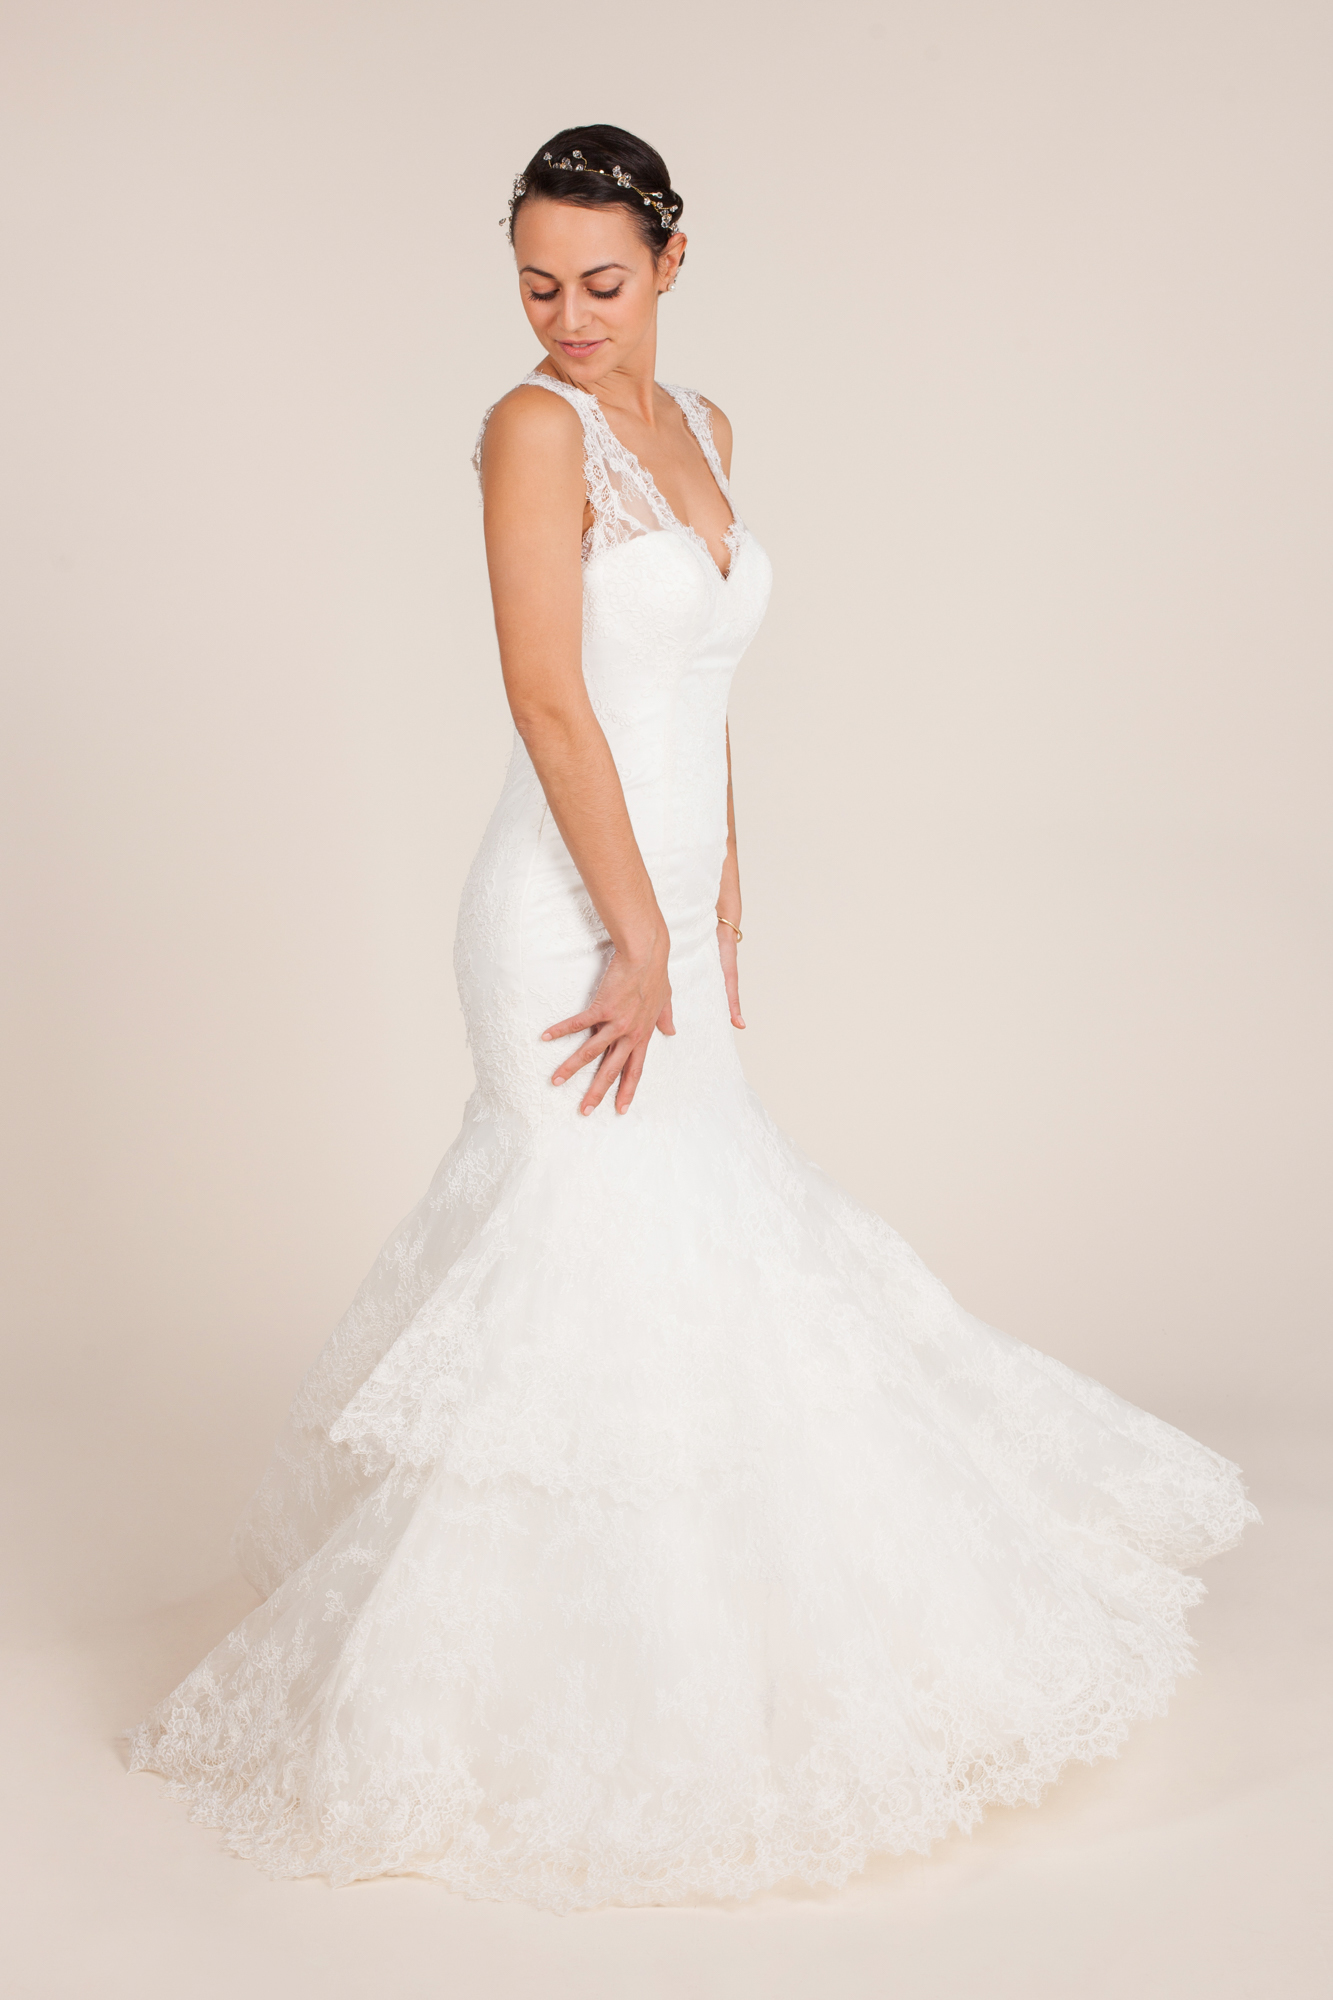 Allure bridals size 0 - $750 - (73% OFF)